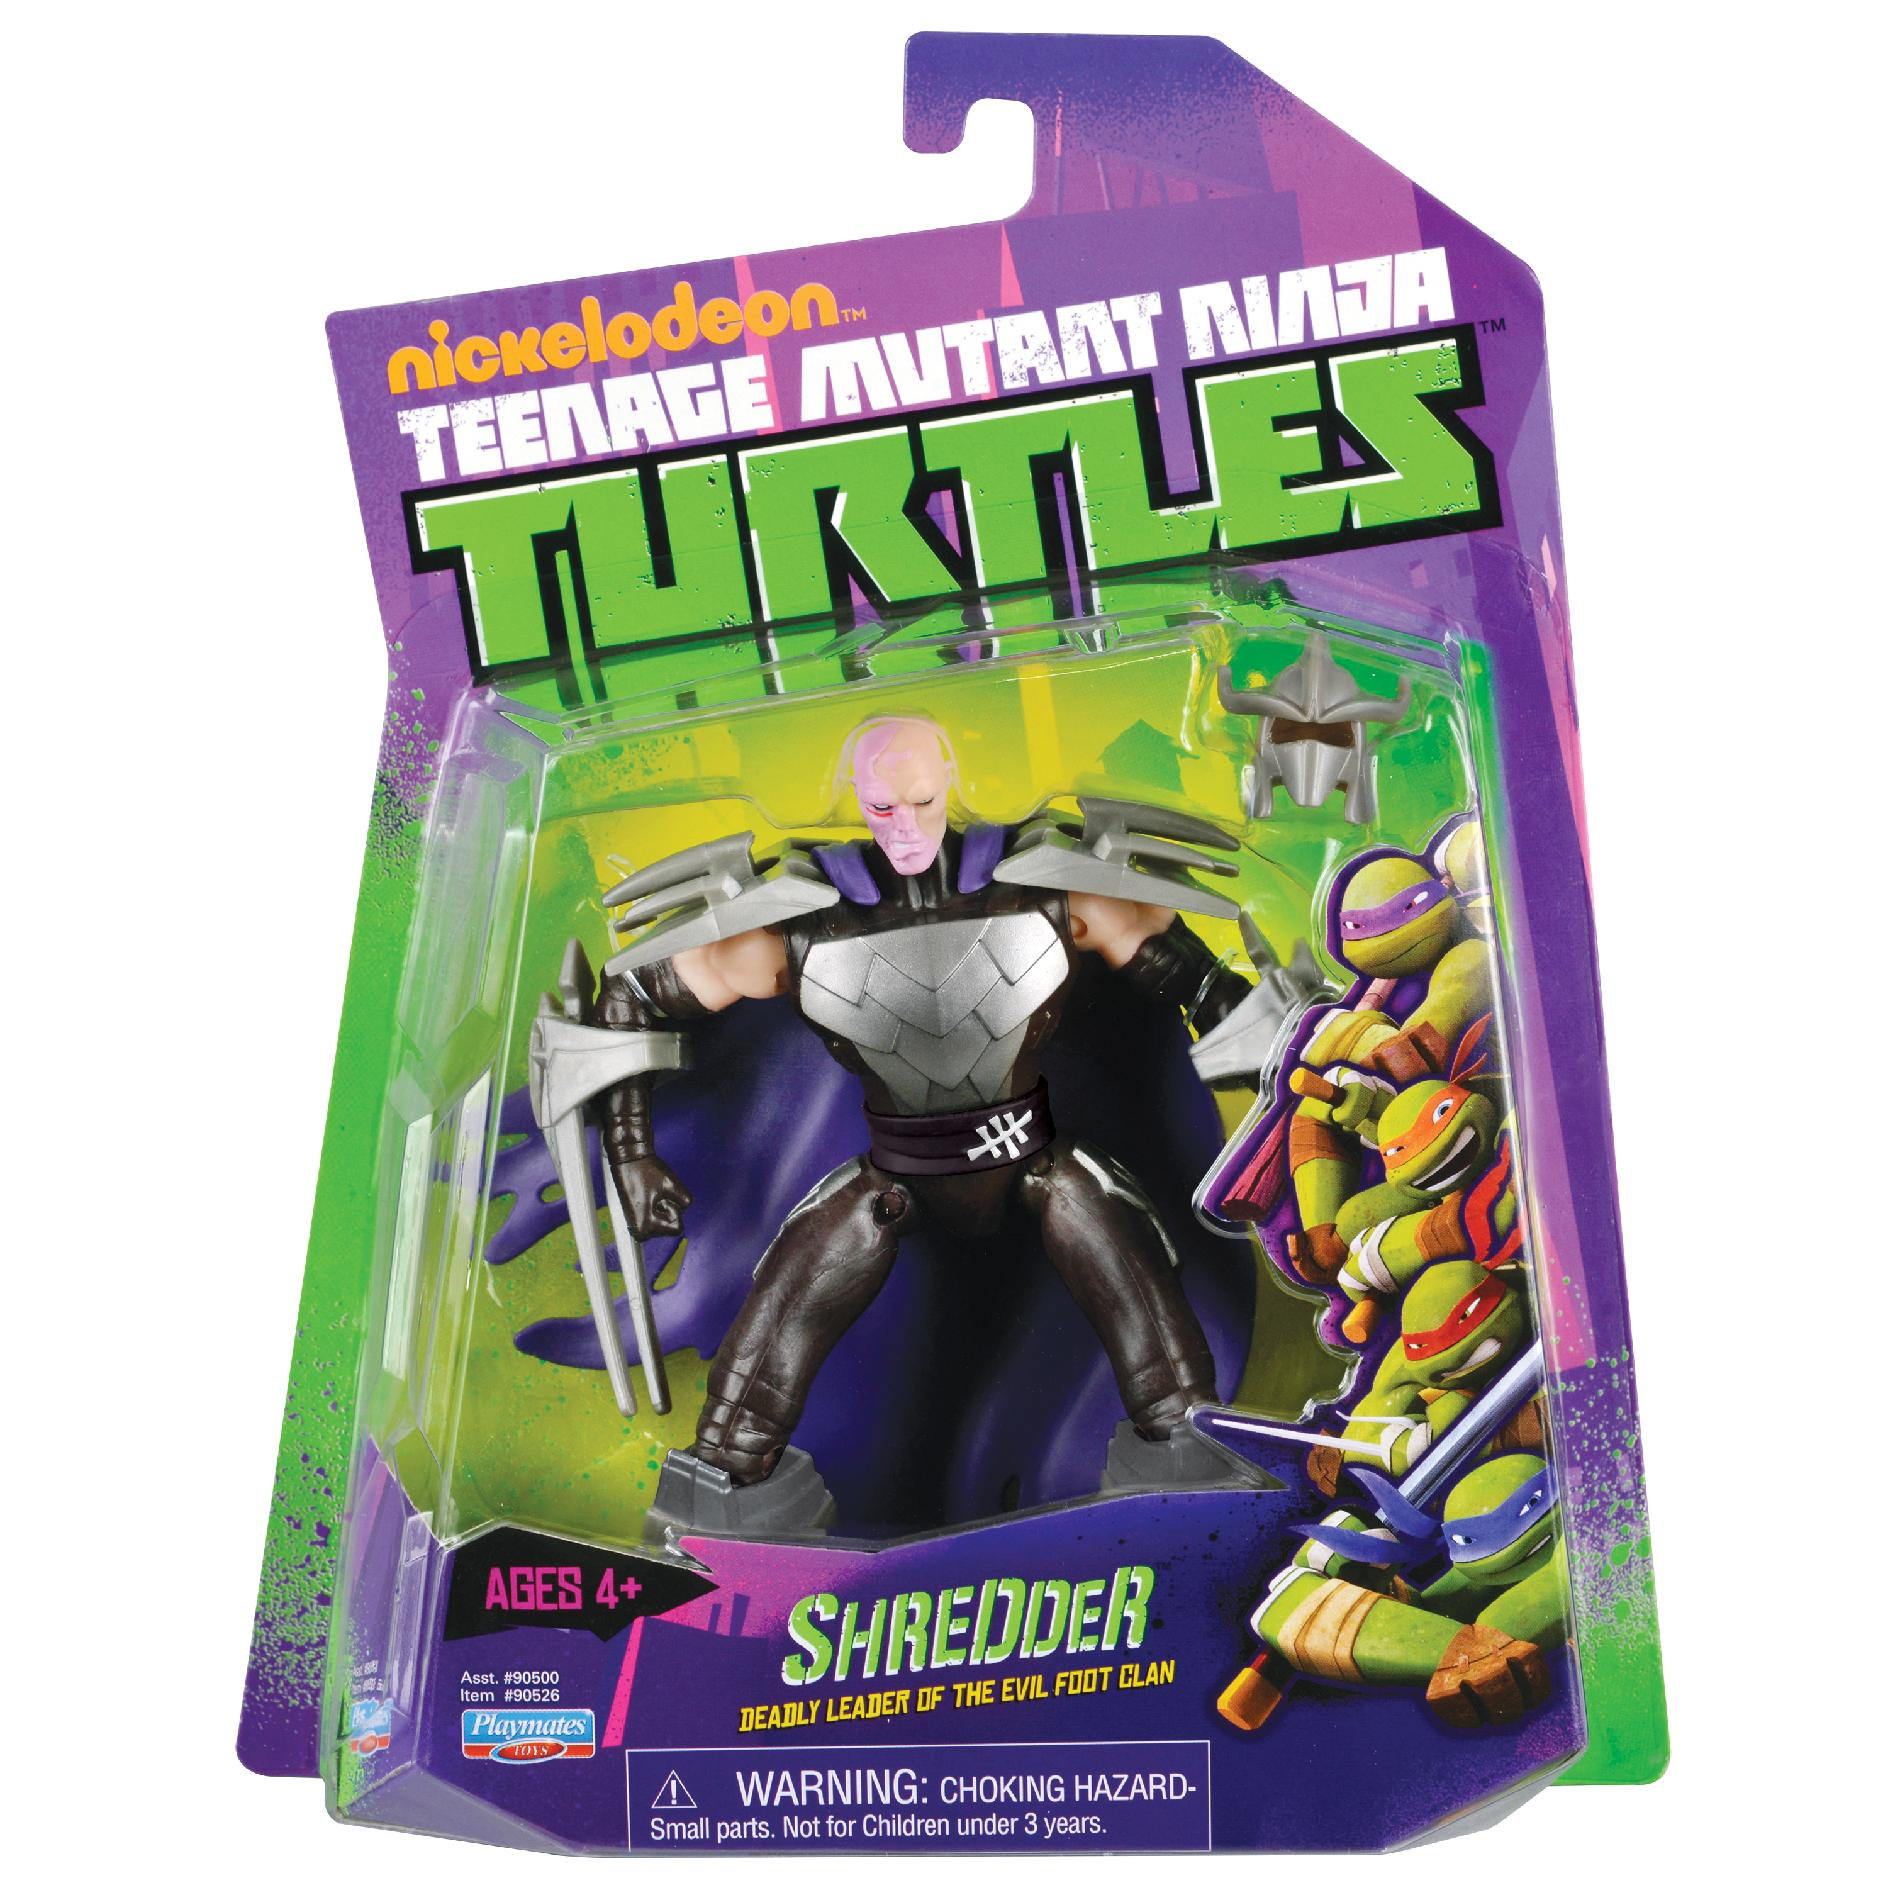 Teenage Mutant Ninja Turtles 2012 Neuralizer Toy : Shredder action figure tmntpedia fandom powered